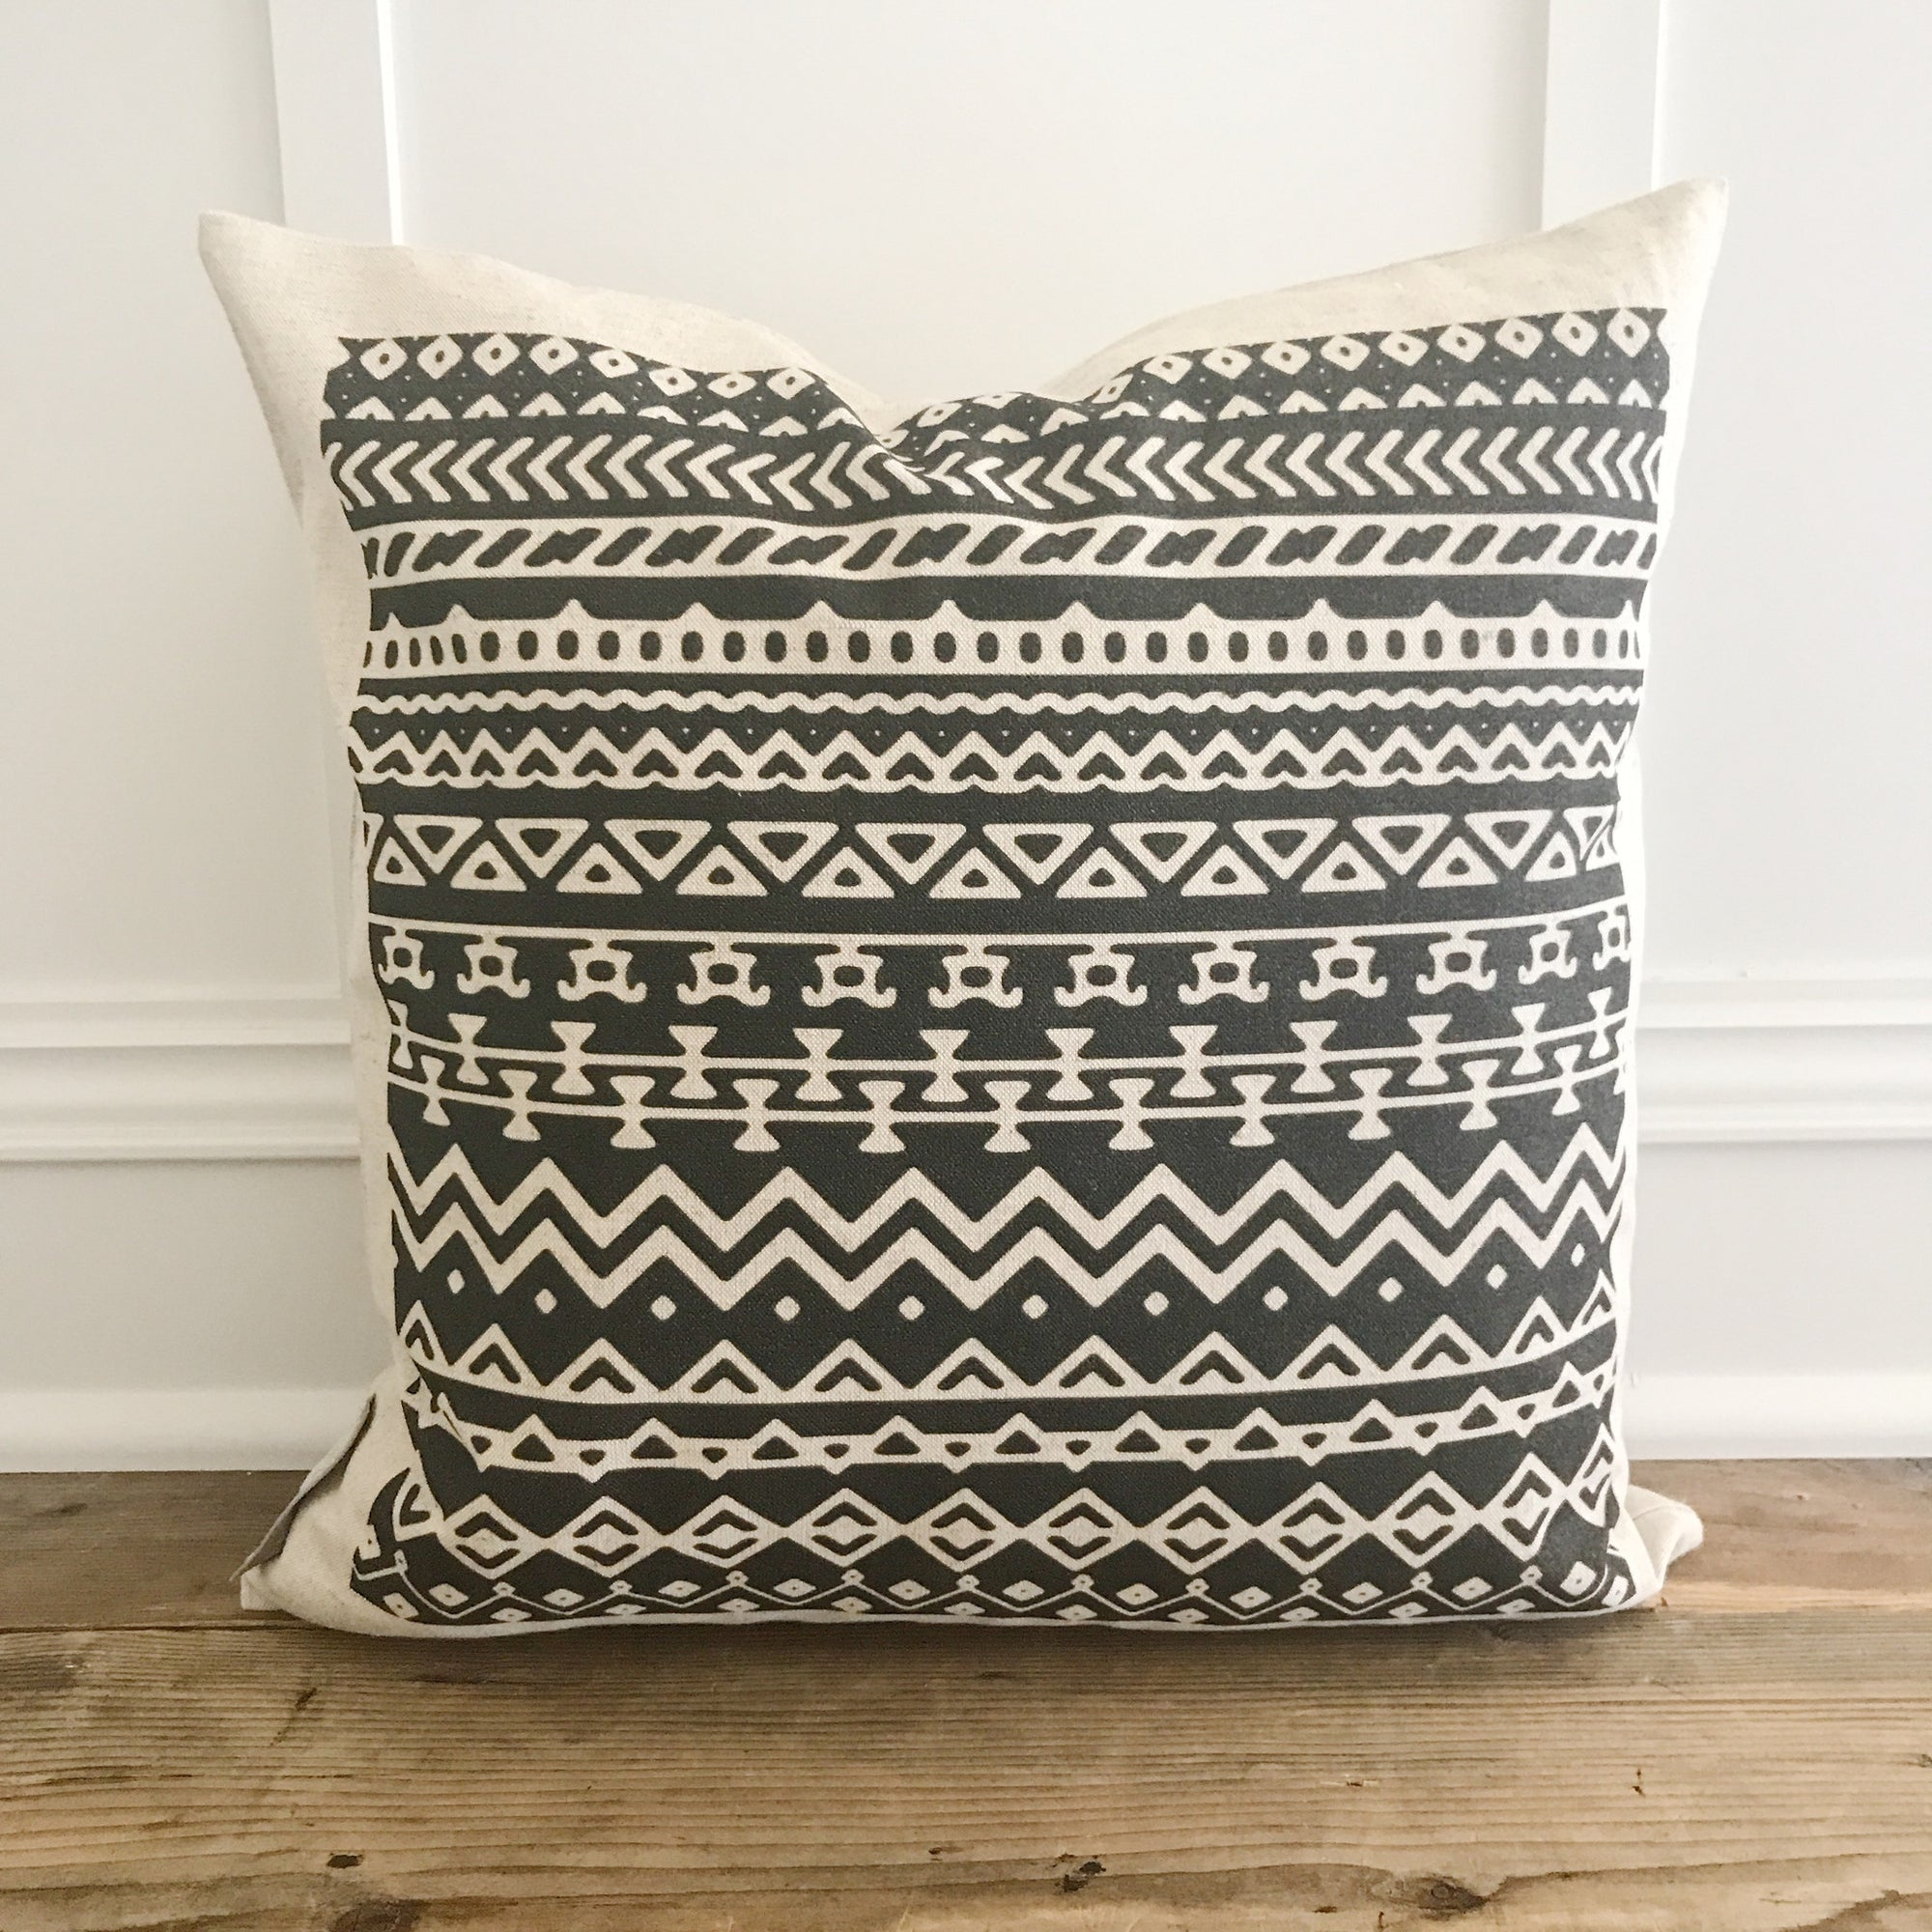 Aztec Pillow Cover (Design 8) - Linen and Ivory